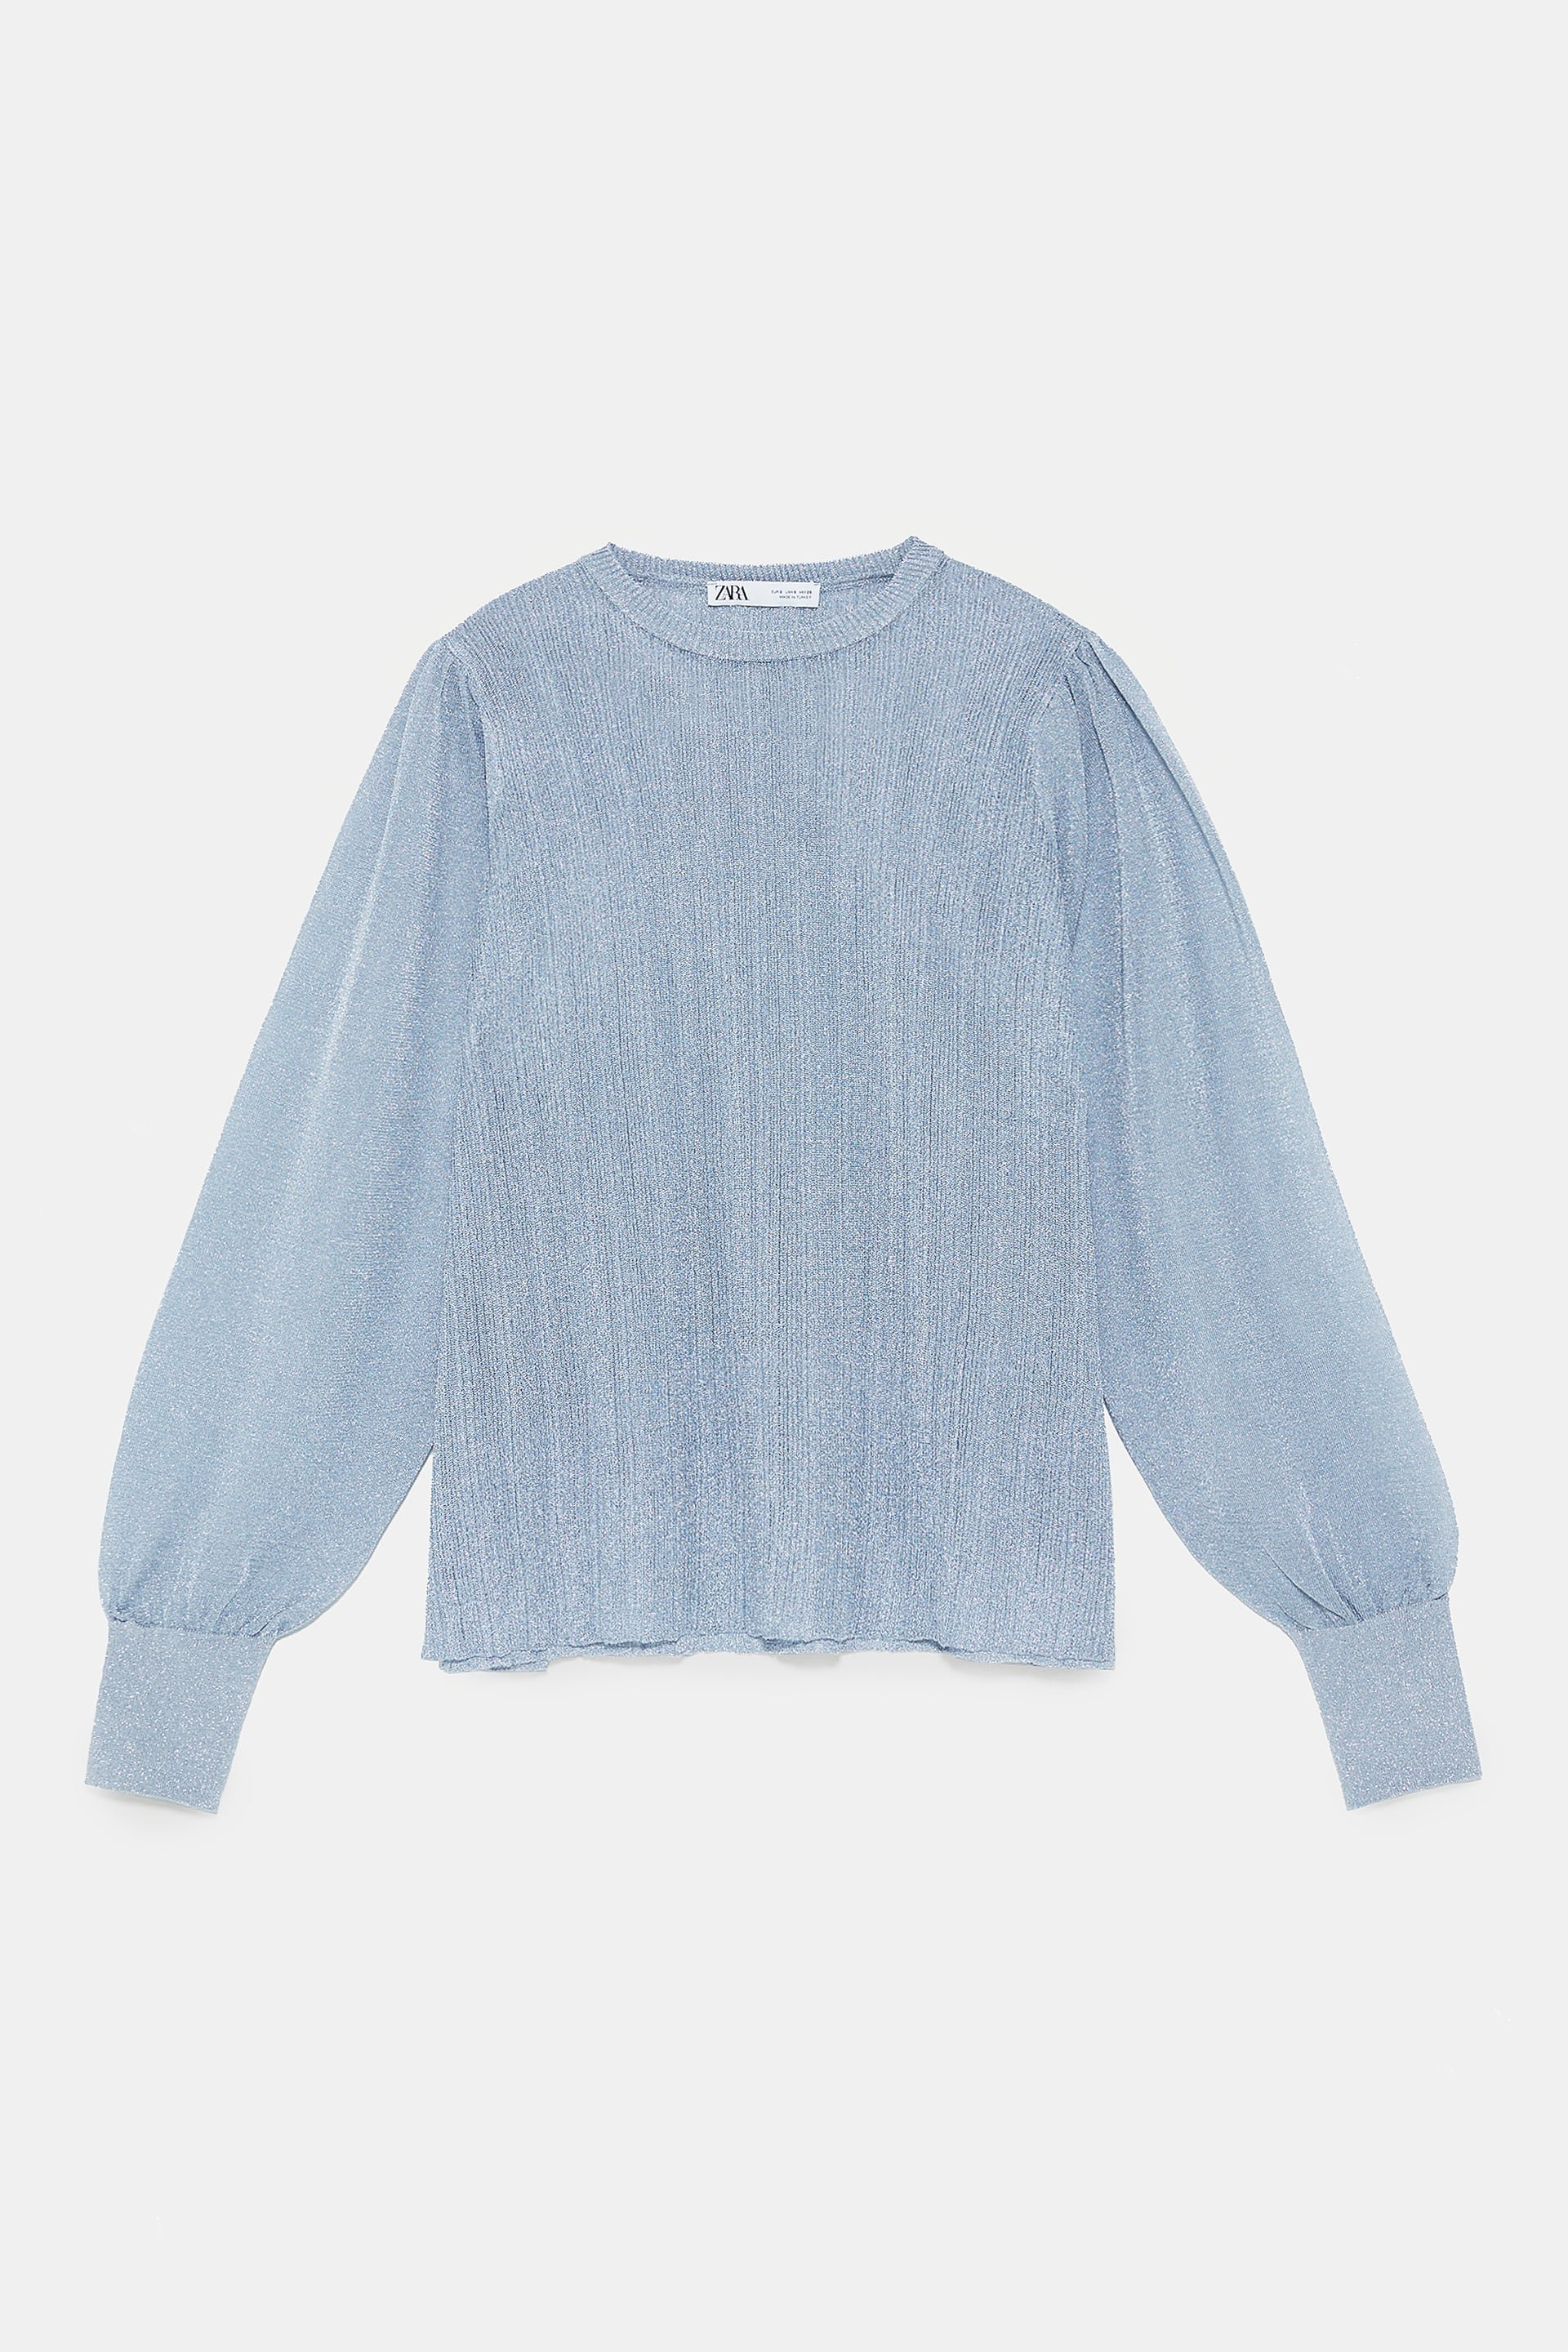 SPARKLY KNIT BLOUSE - View all-KNITWEAR-WOMAN | ZARA United States